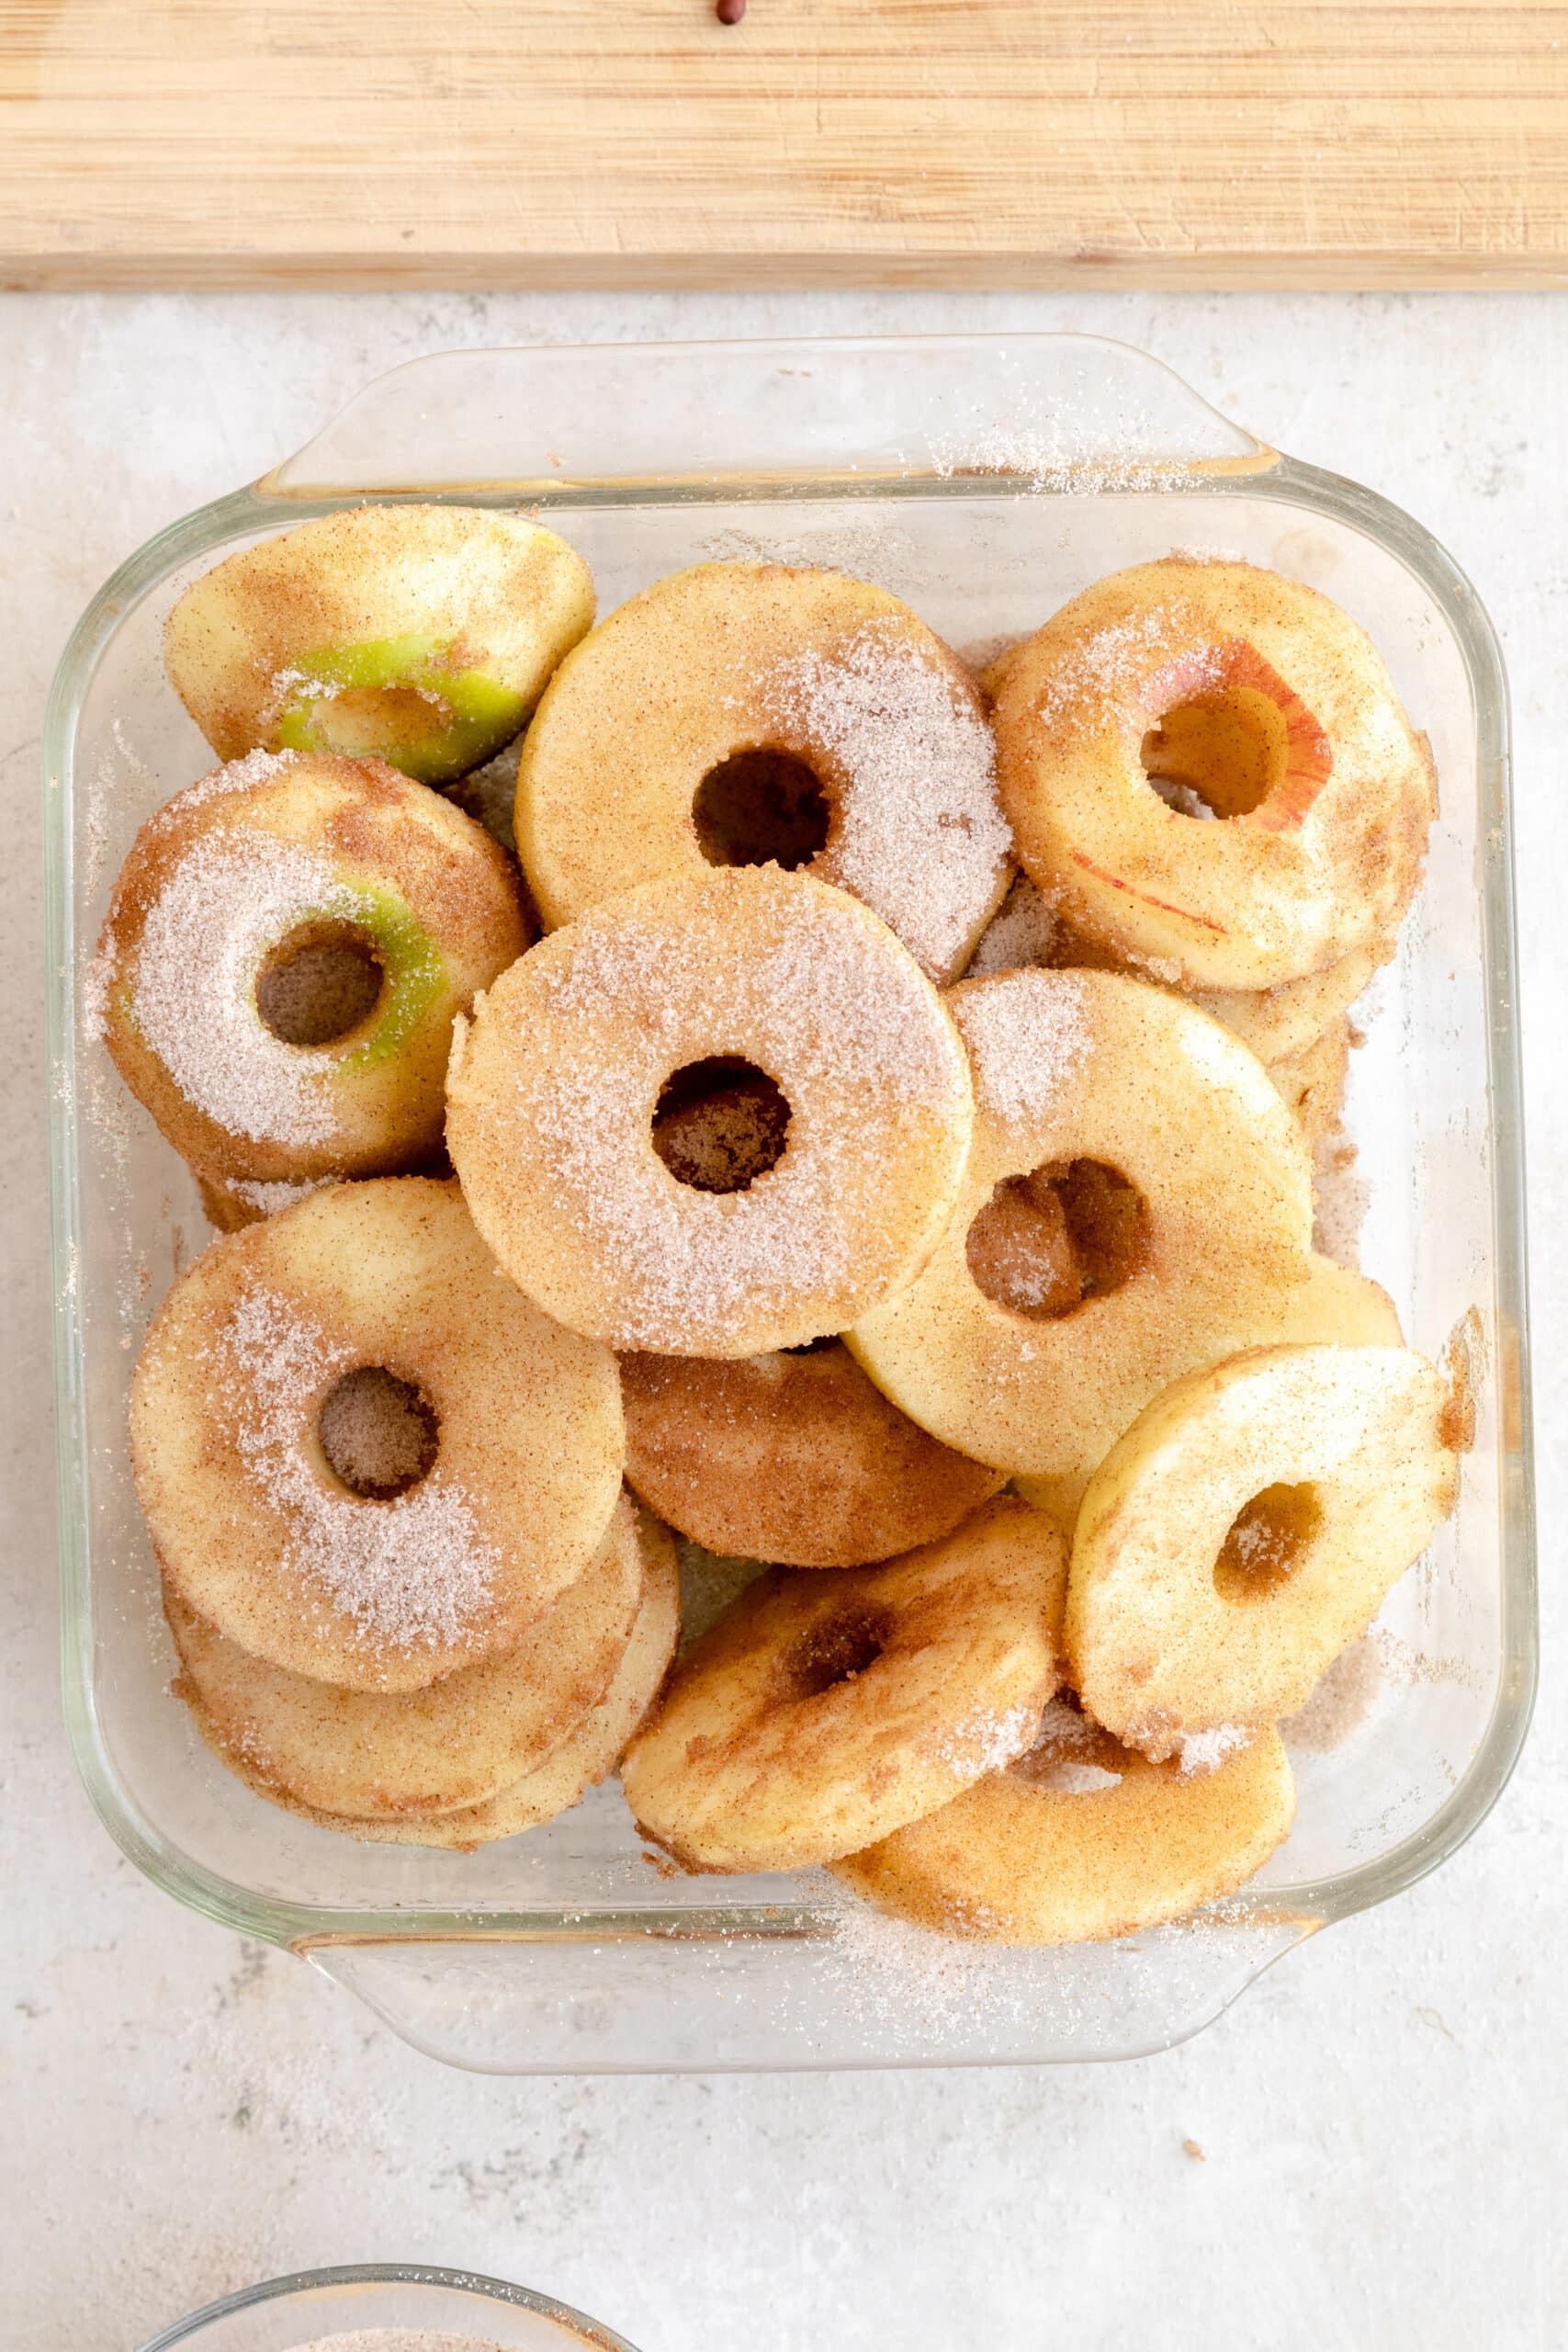 Apple slices tossed with cinnamon sugar and vanilla in a baking dish.